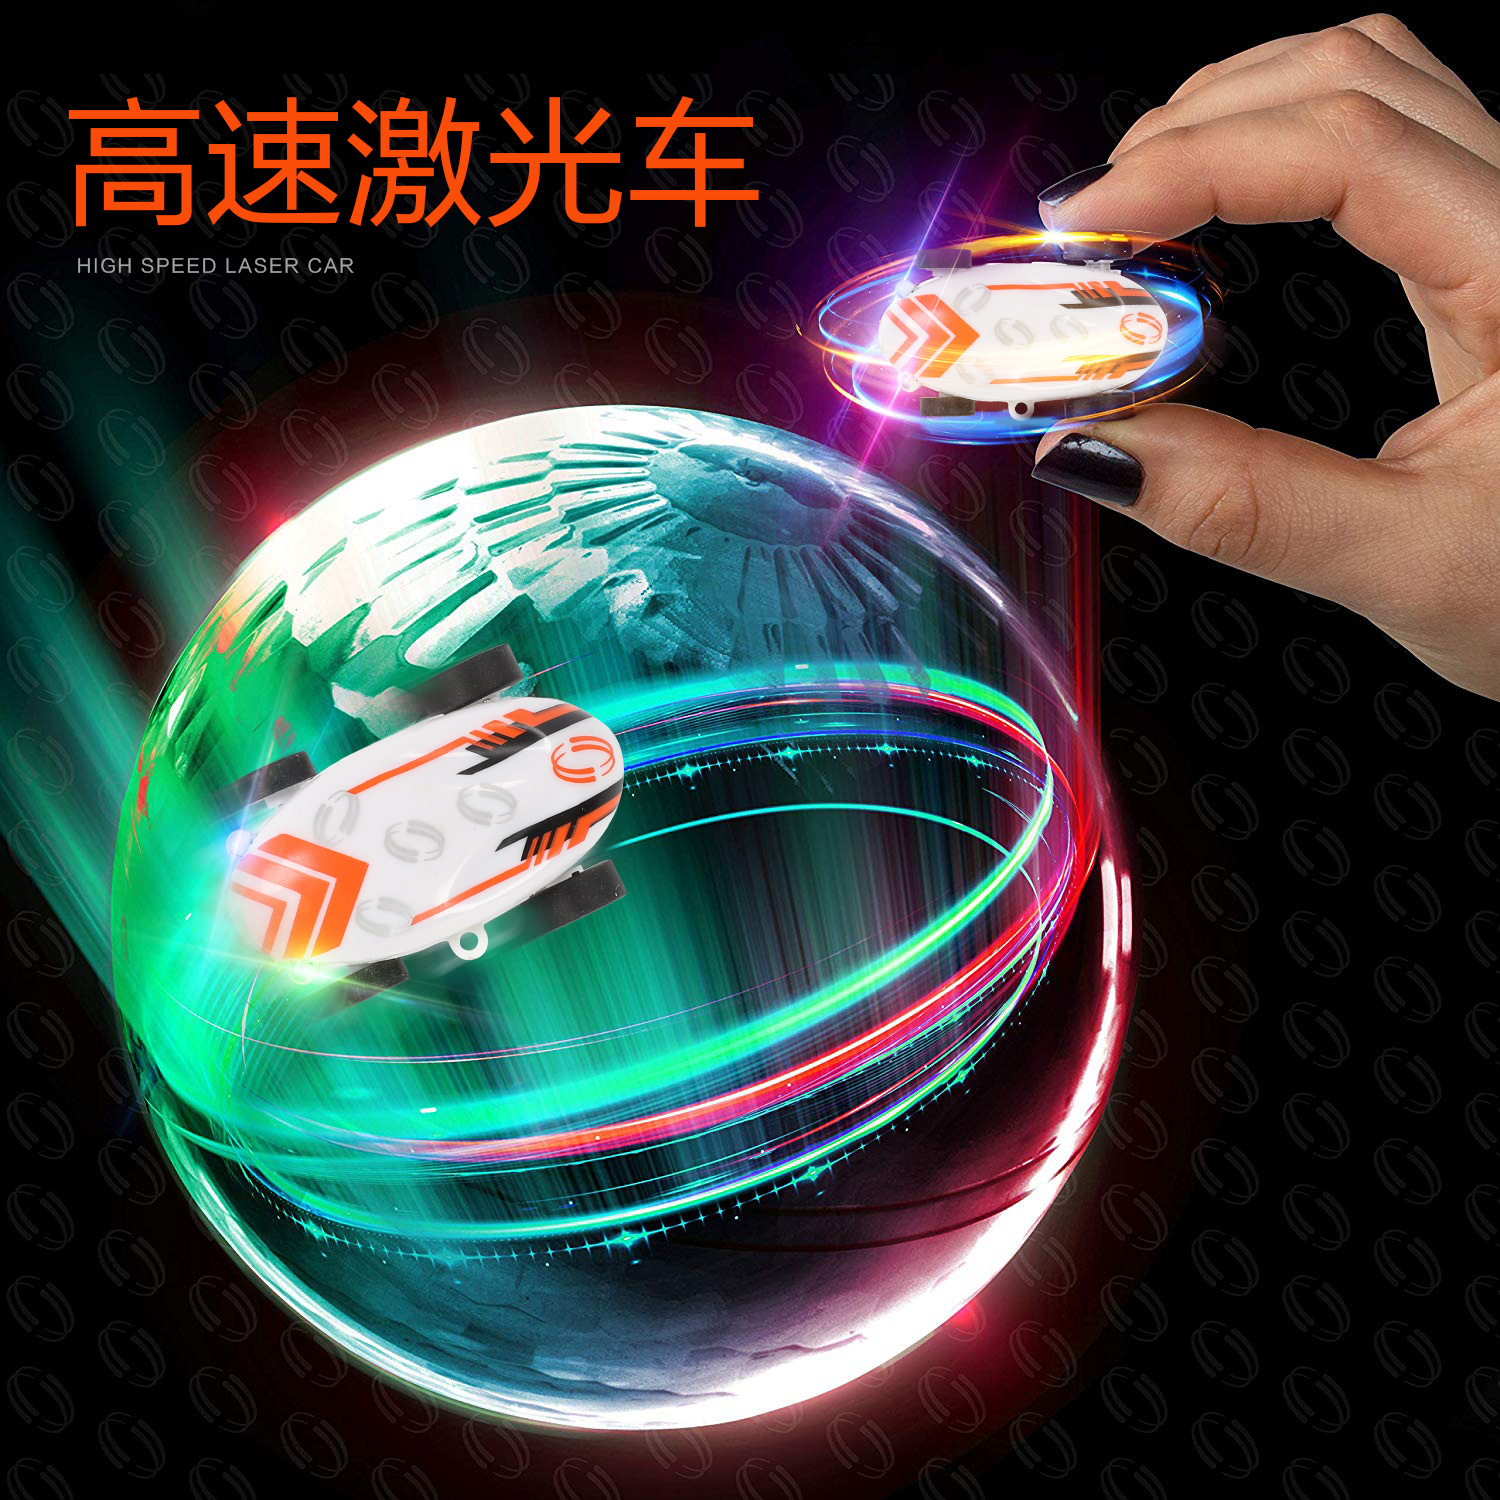 High-Speed Laser Race Car Mini Portable Stroller Stunt Flipping Light Included Light Mini Race Car Toy